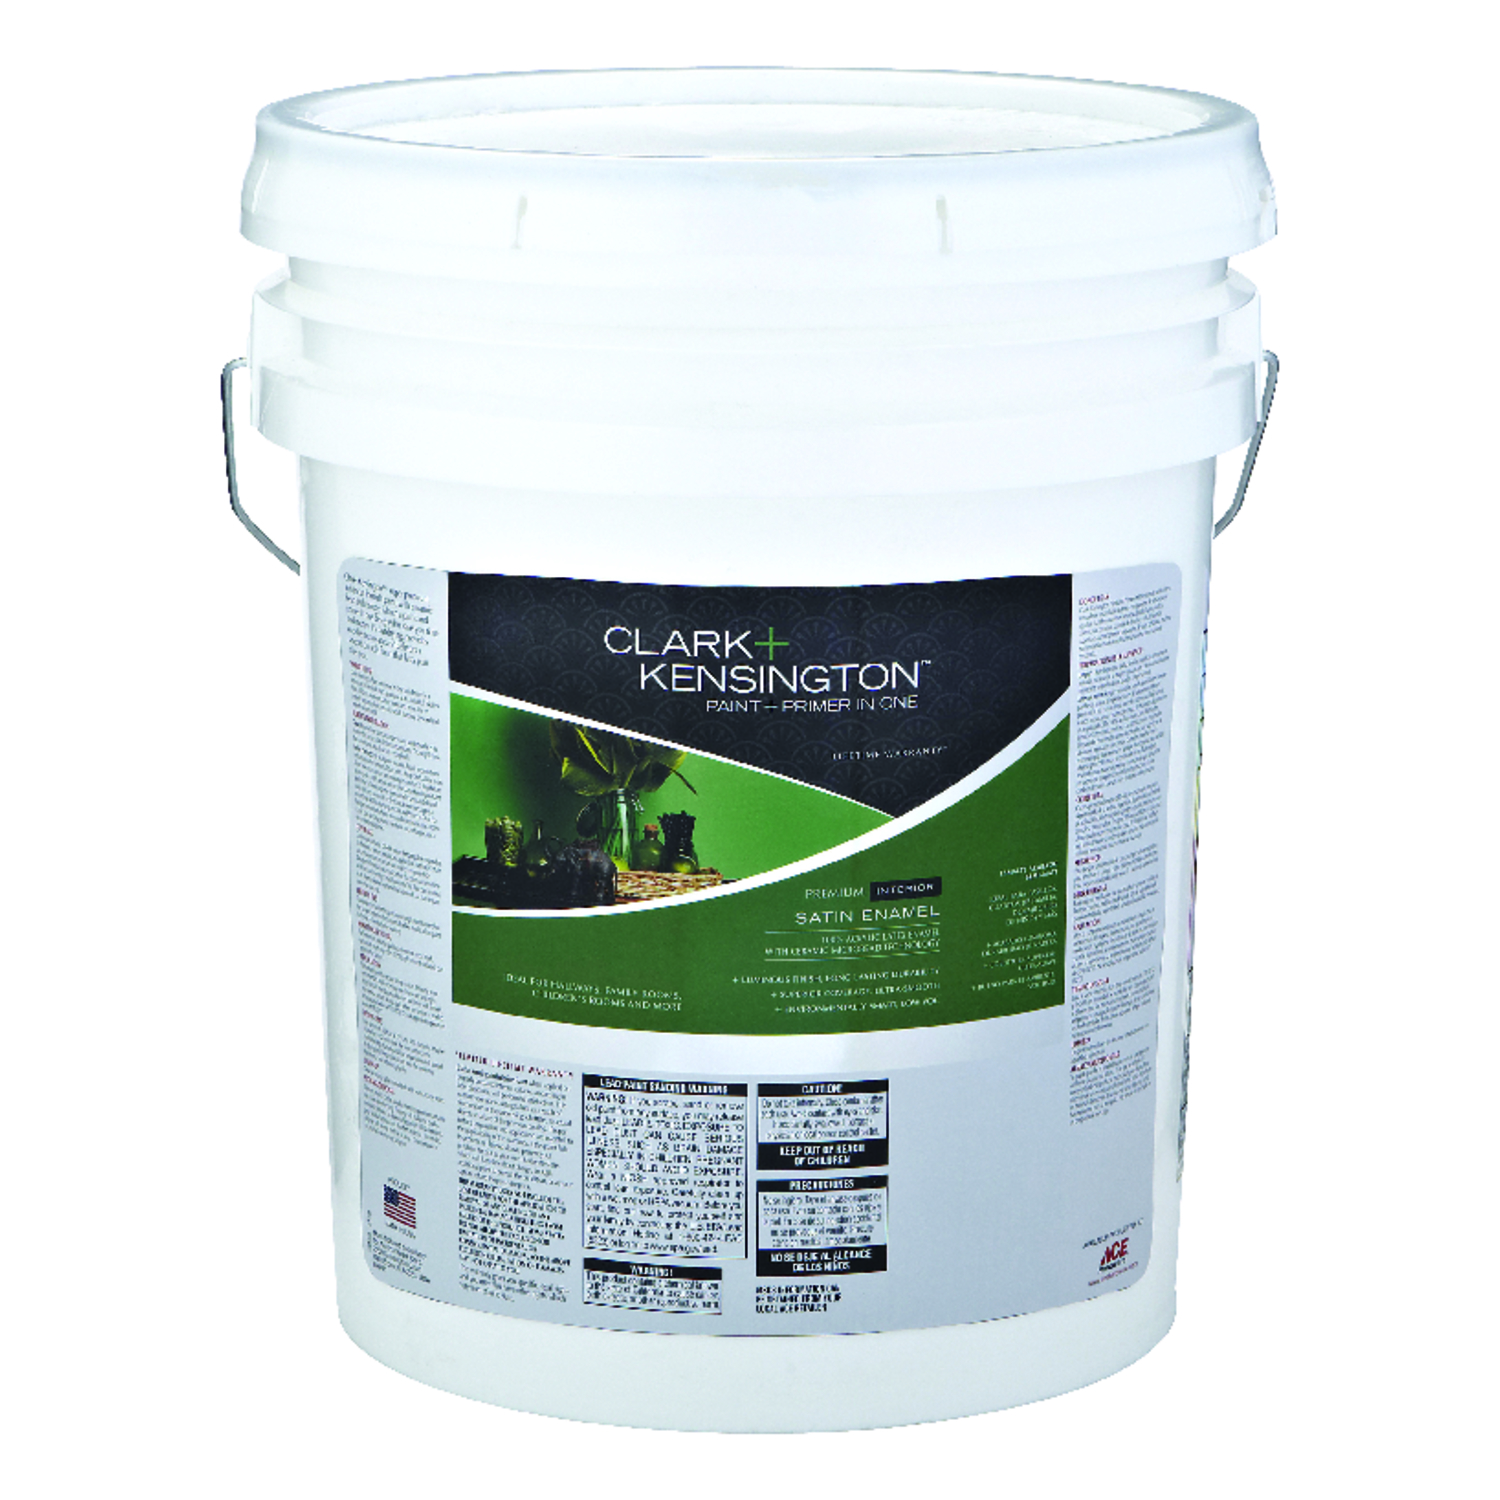 Clark+Kensington  Ultra White  Ultra White Base  Acylic Latex  Paint and Primer  5 gal. Satin